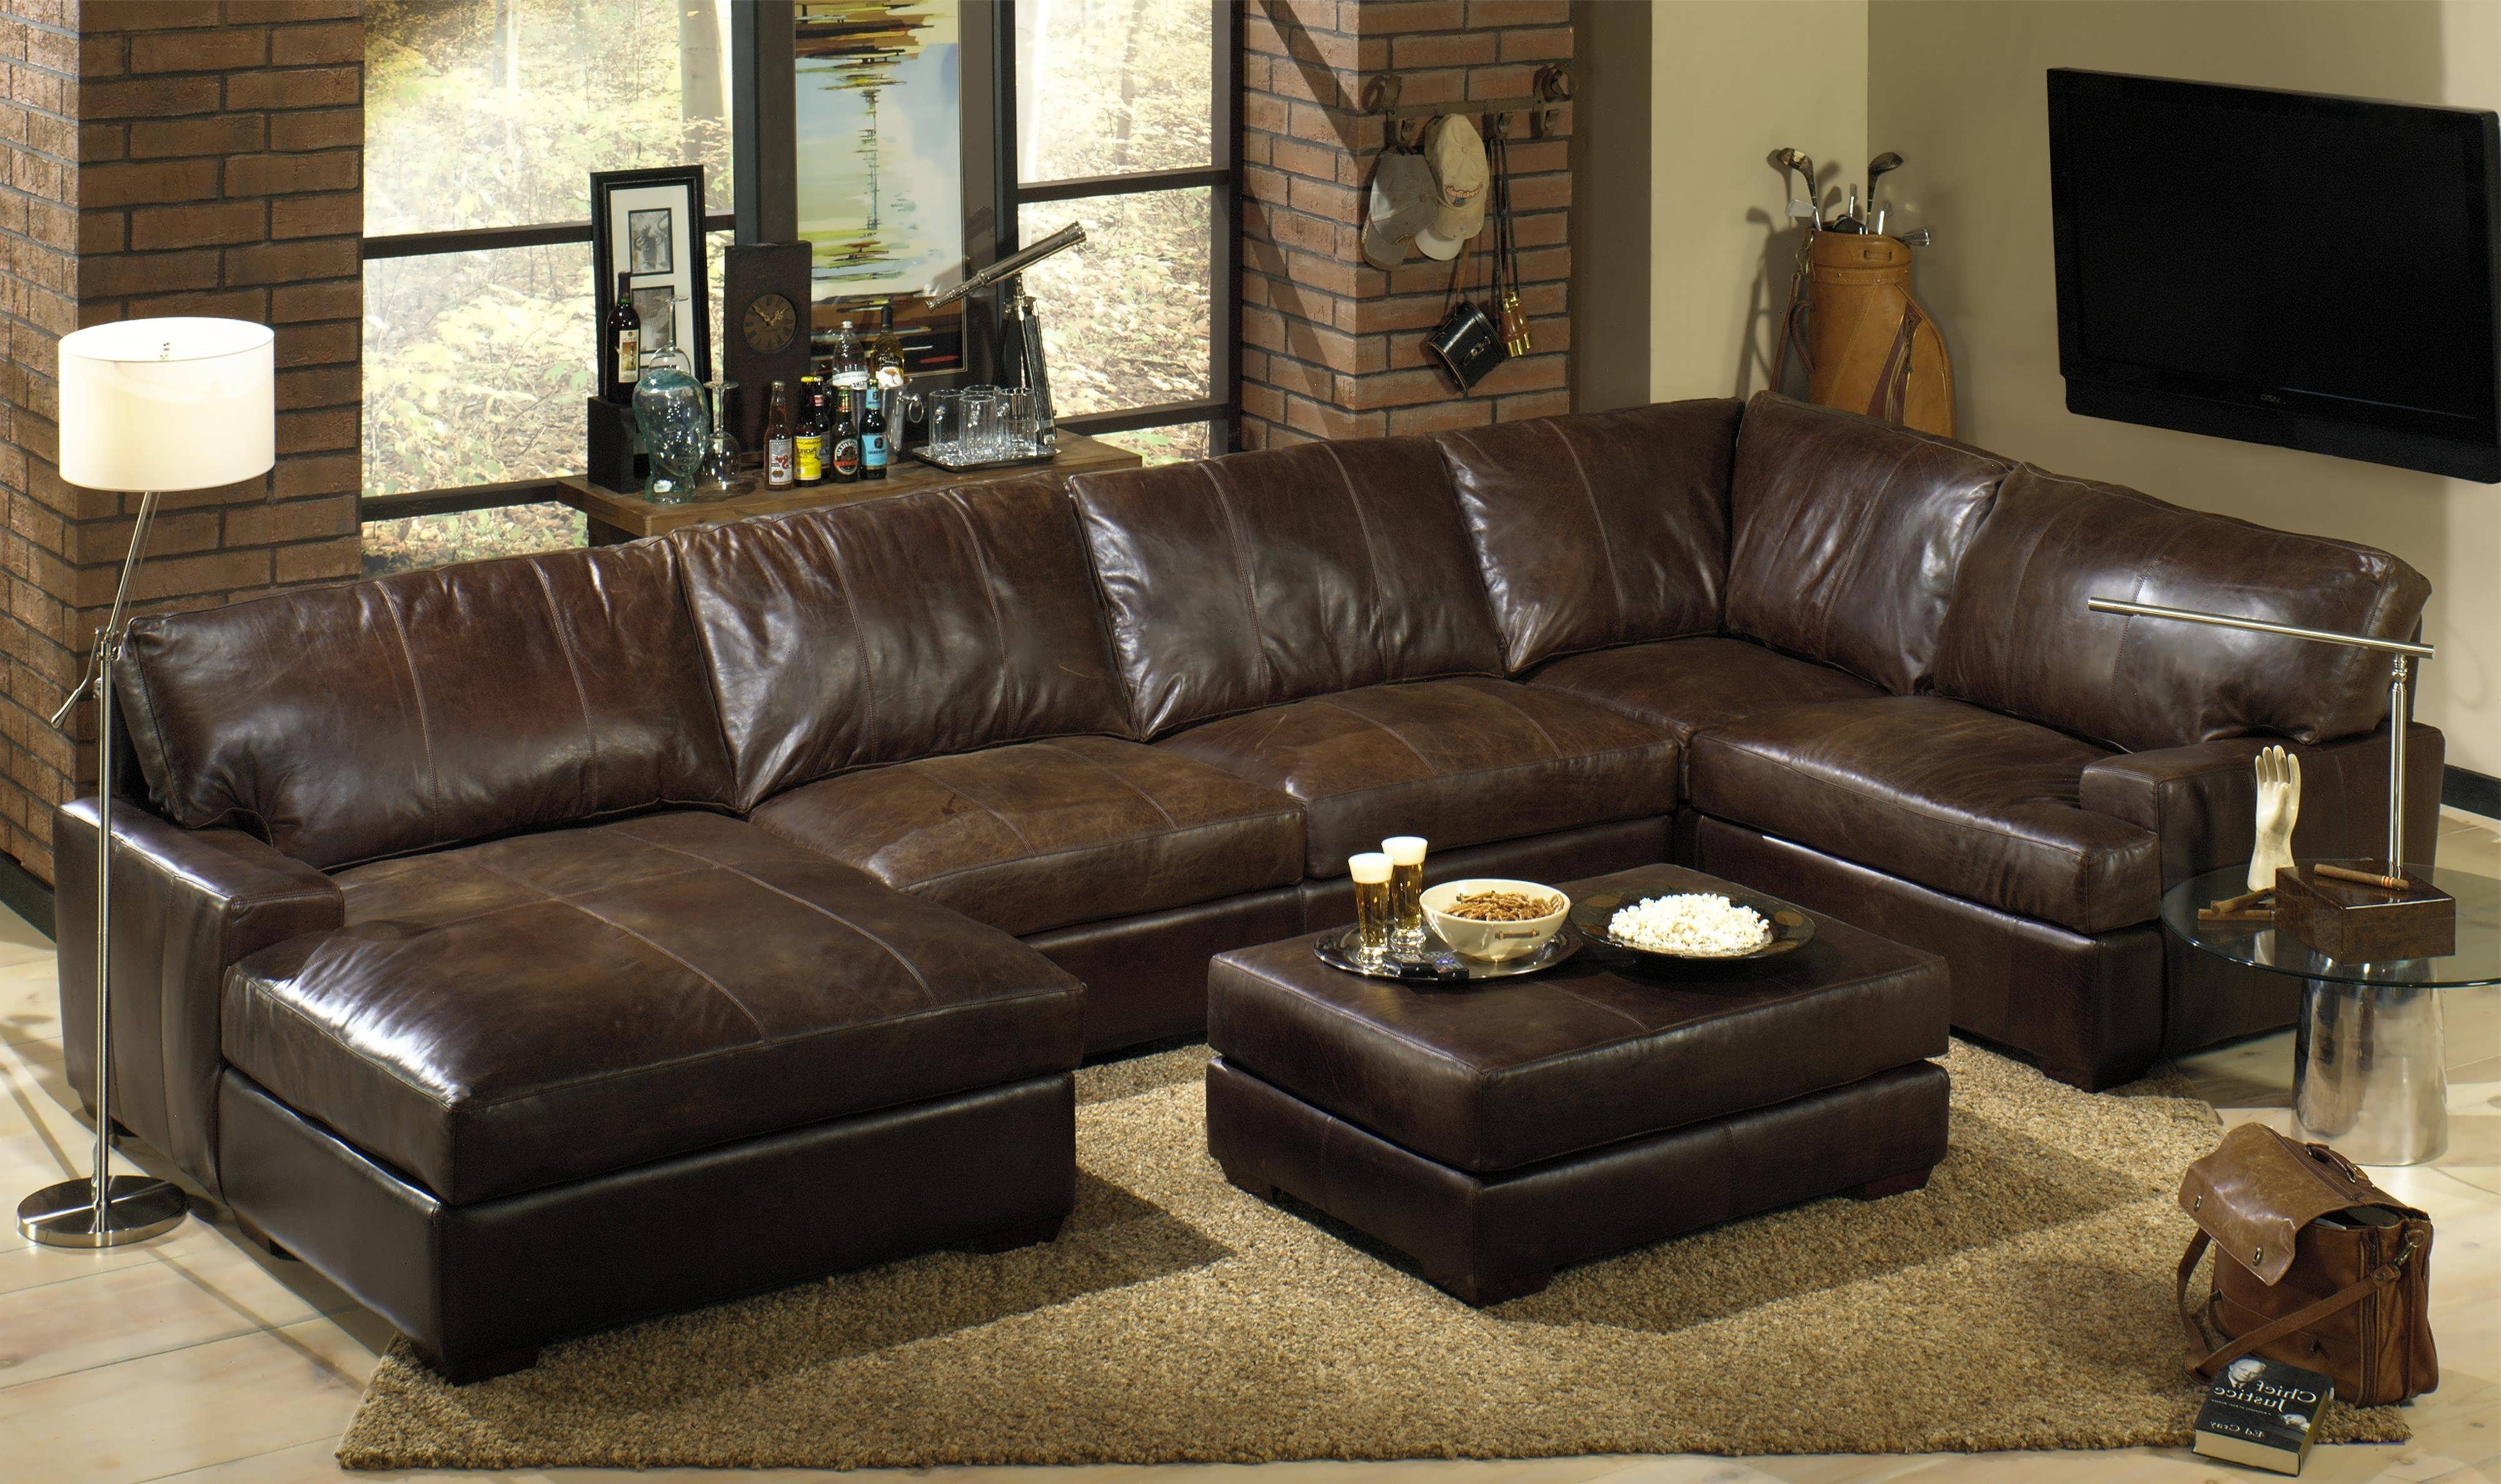 Preferred Sofa : Chaise Sofa Sectional With Chaise And Recliner White Regarding Leather Sofas With Chaise (View 9 of 15)